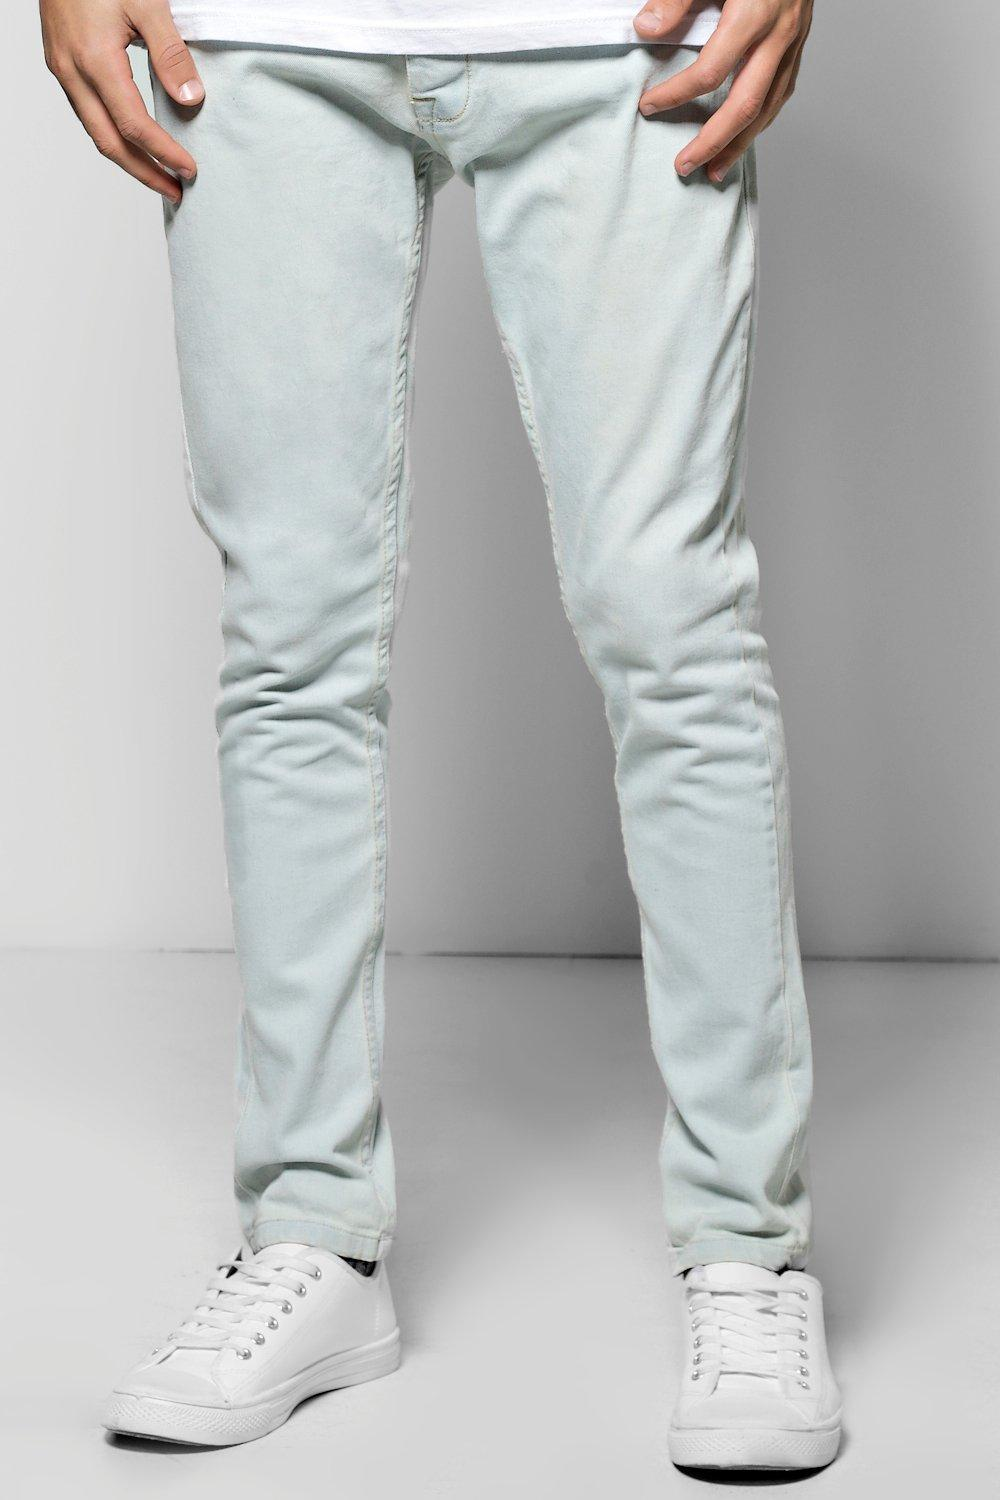 Stretch Skinny Fit Pale Blue Jeans